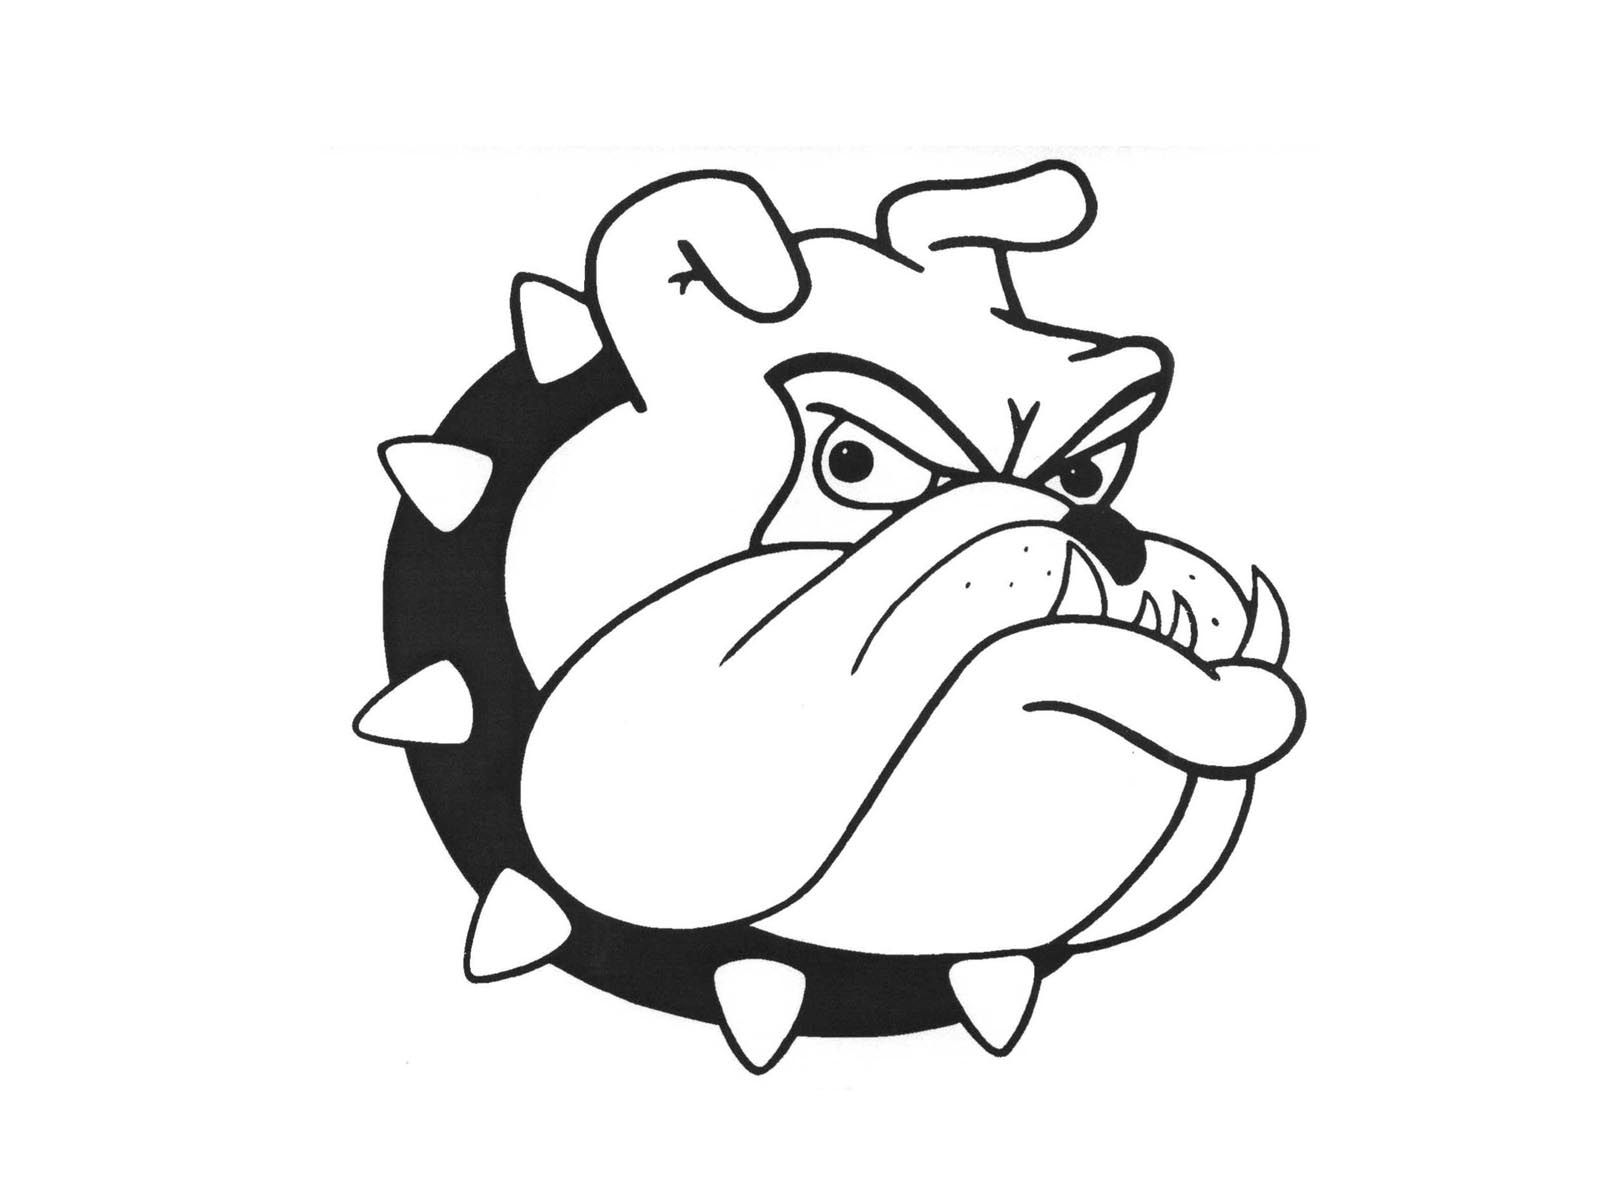 small resolution of 14 cartoon bulldog images free cliparts that you can download to you